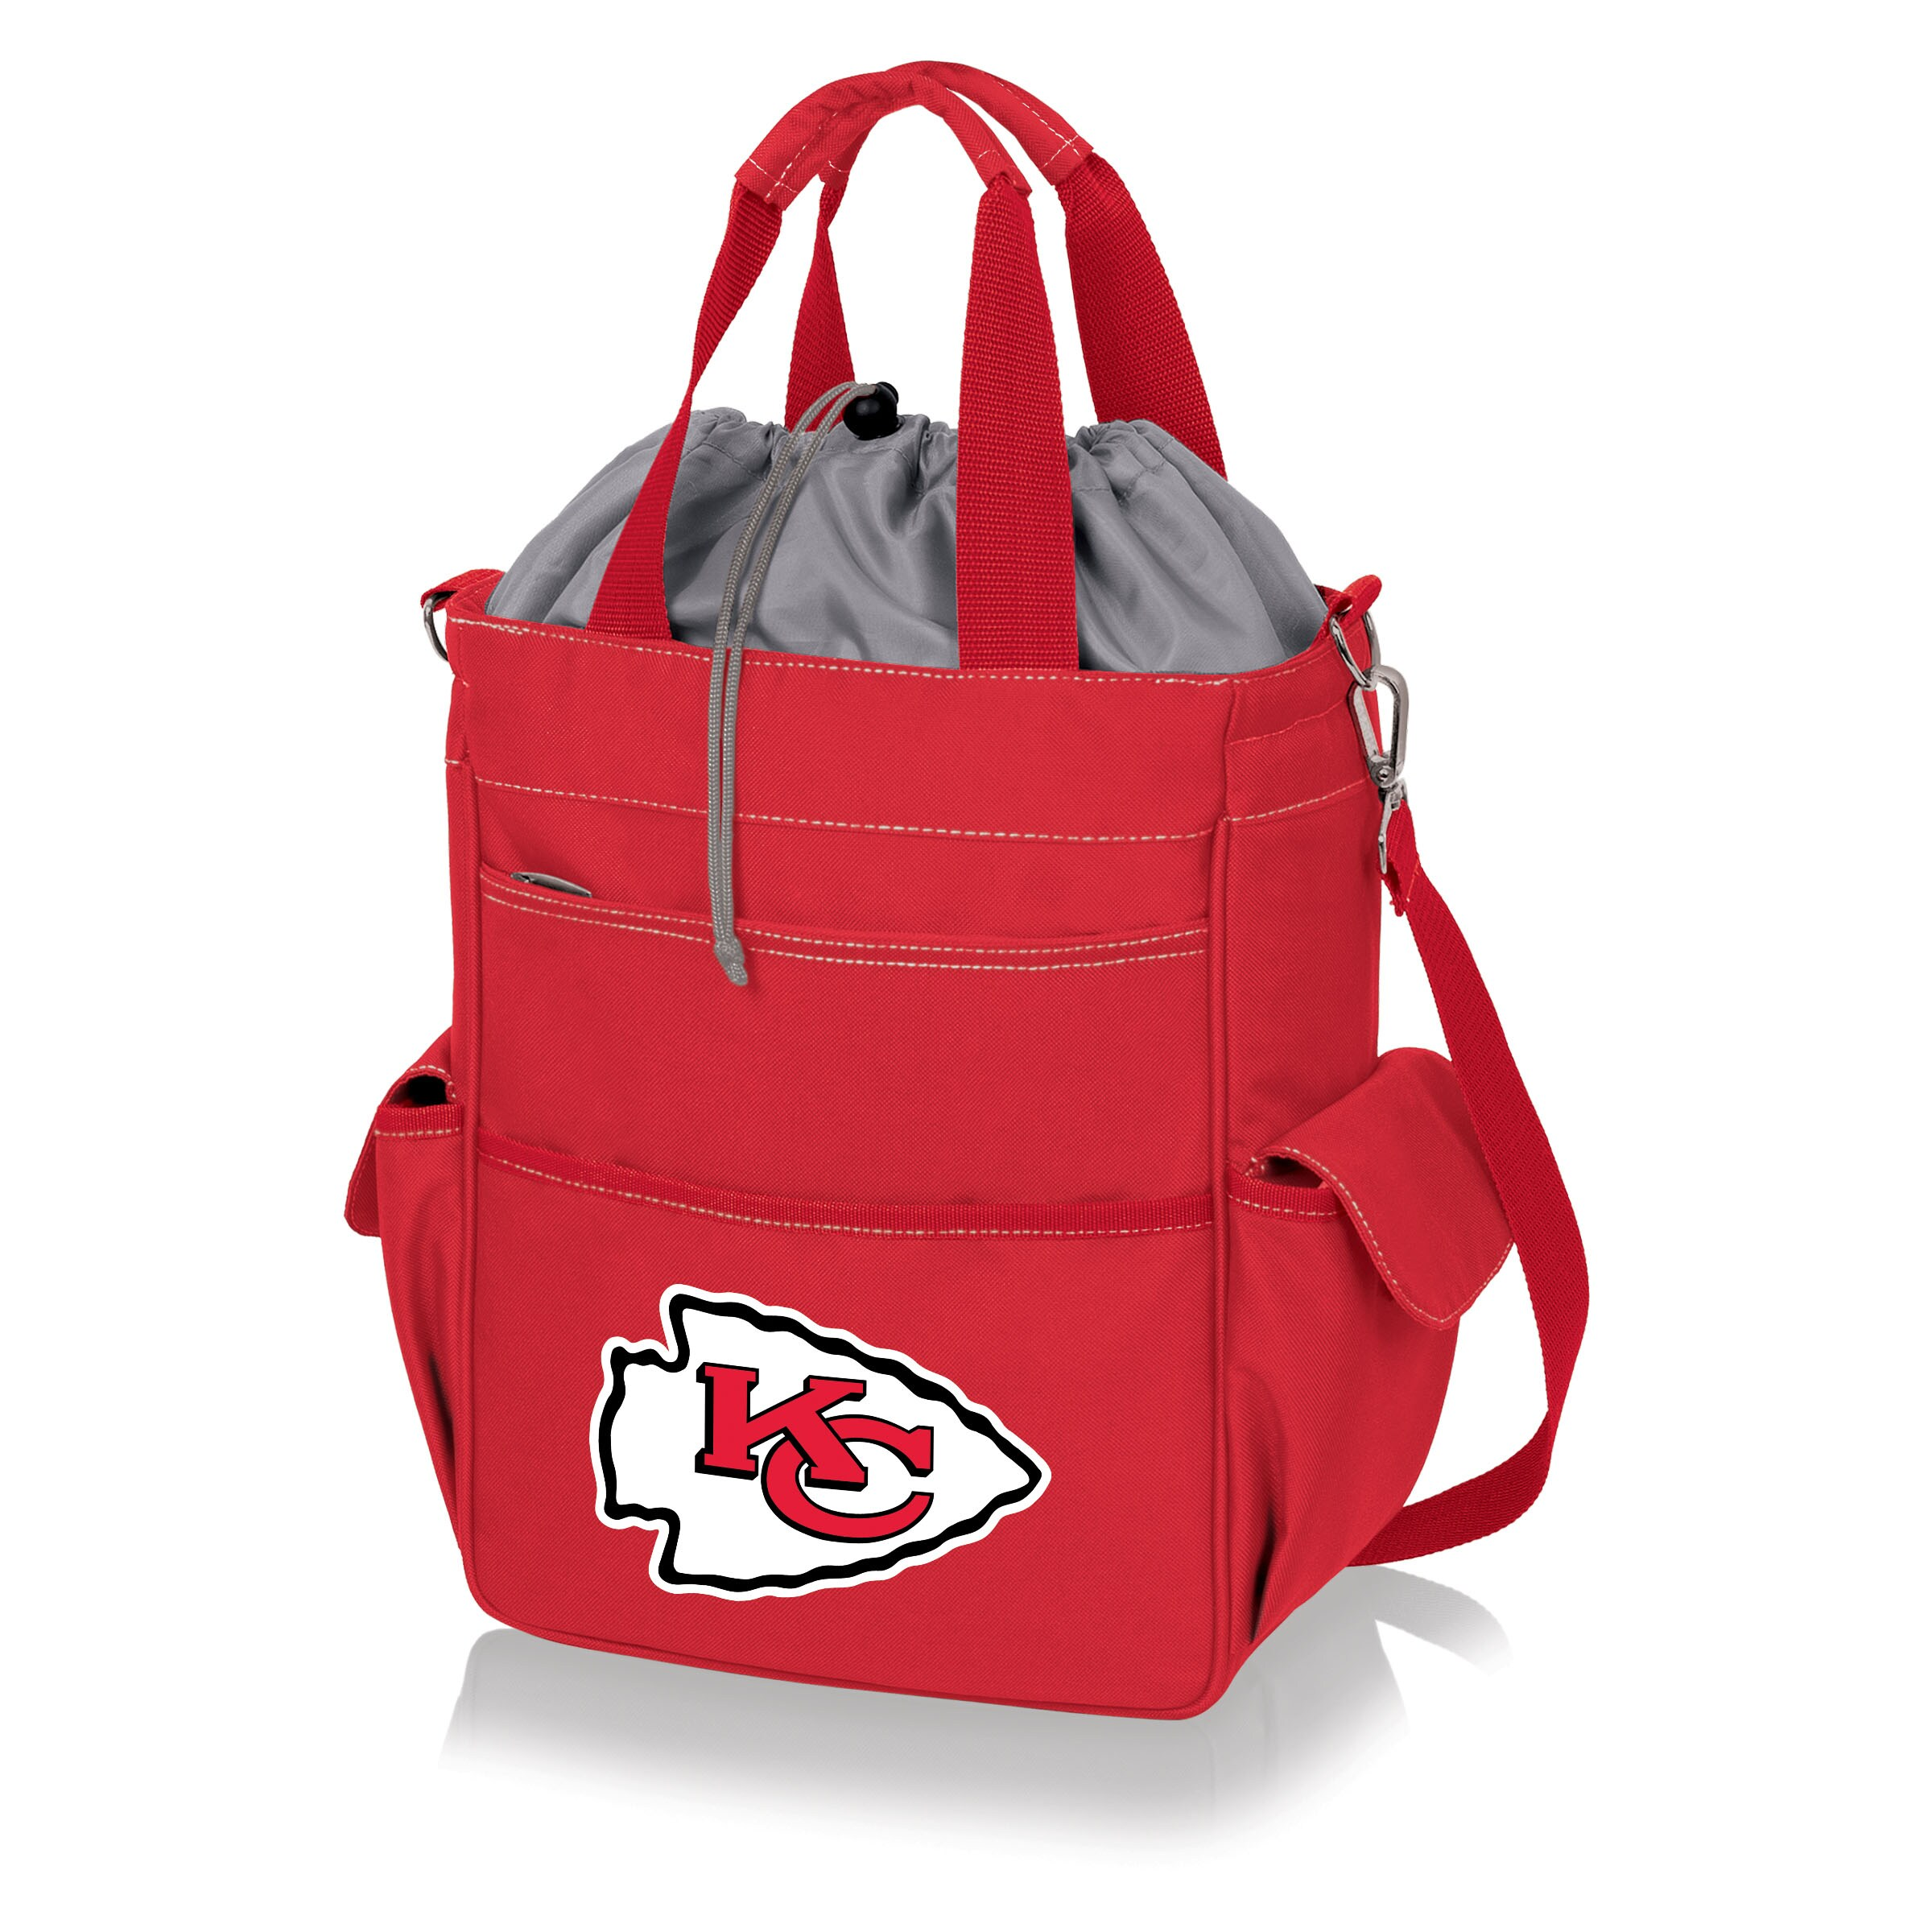 Kansas City Chiefs Activo Cooler Tote - Red